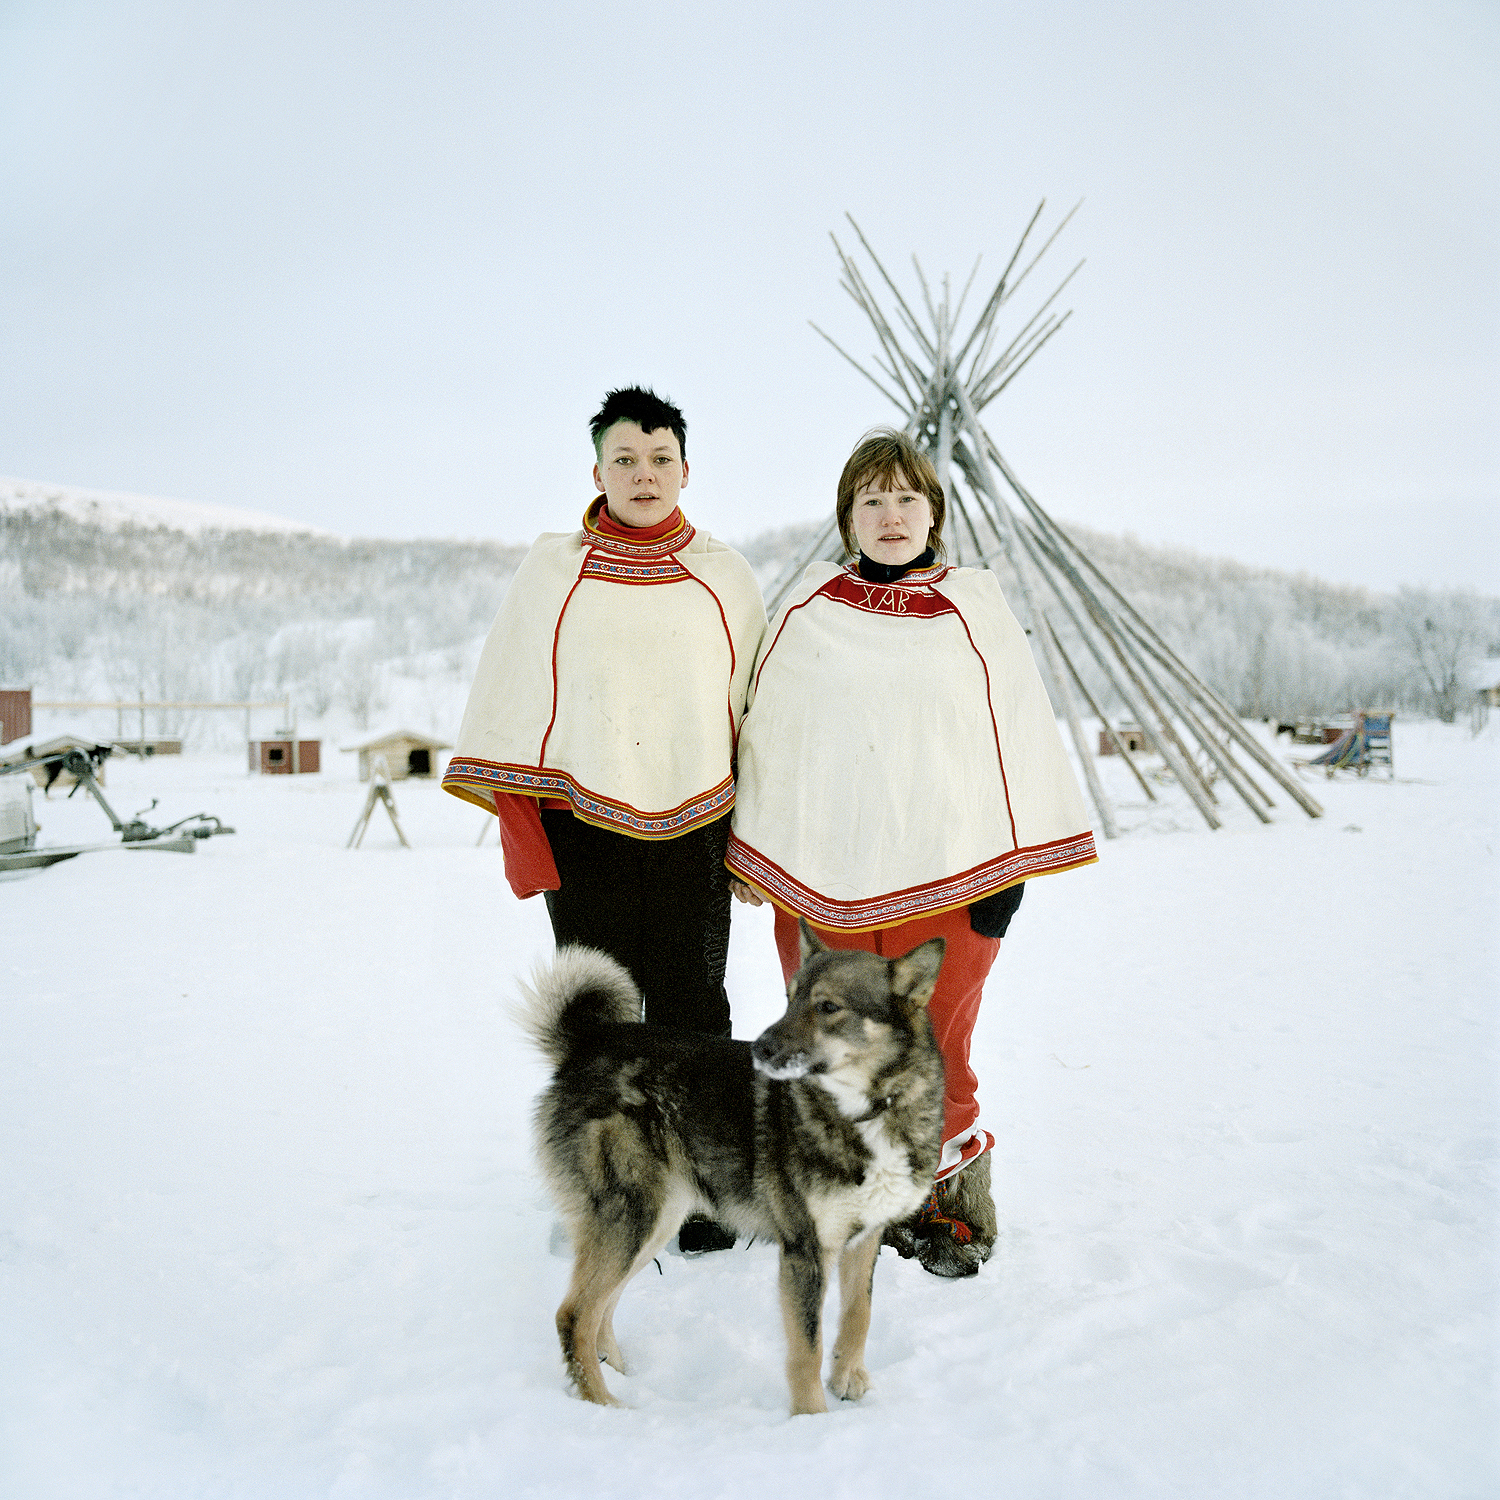 """Máze"": Céline Clanet Documents a Sámi Village in the Norwegian Lapland"